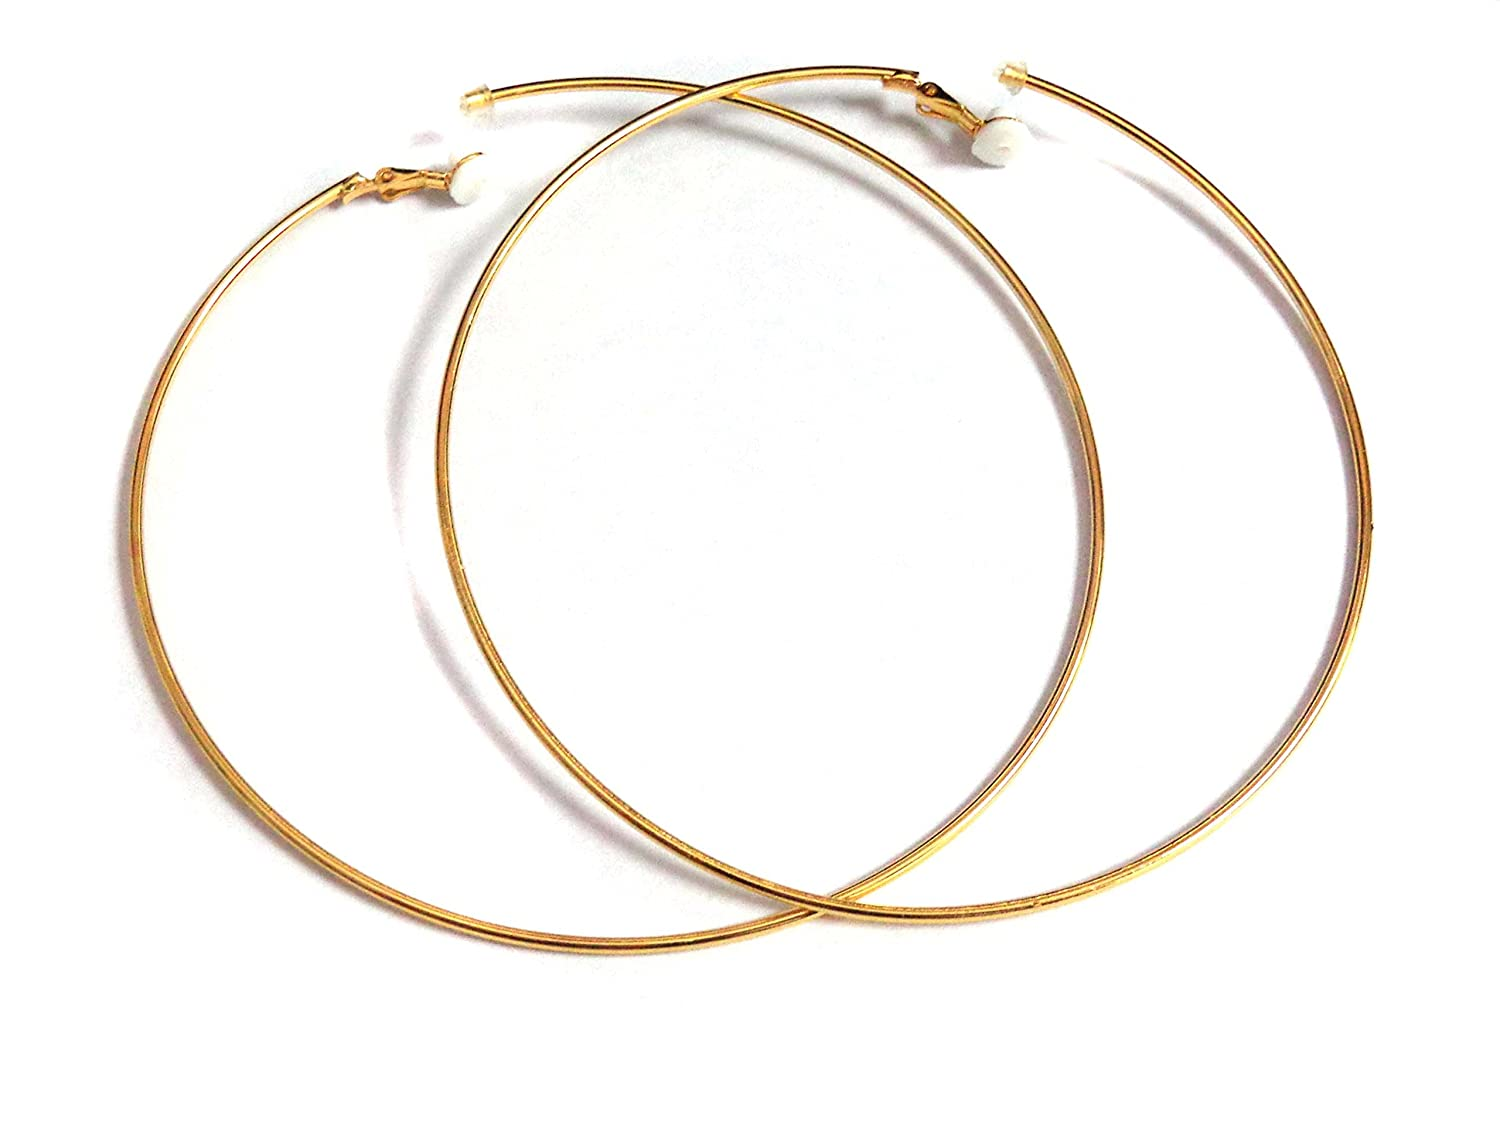 Clip-on Earrings Extra Large 4 inch Hoop Earrings Gold or Silver Tone Hoop Earrings 100mm NA